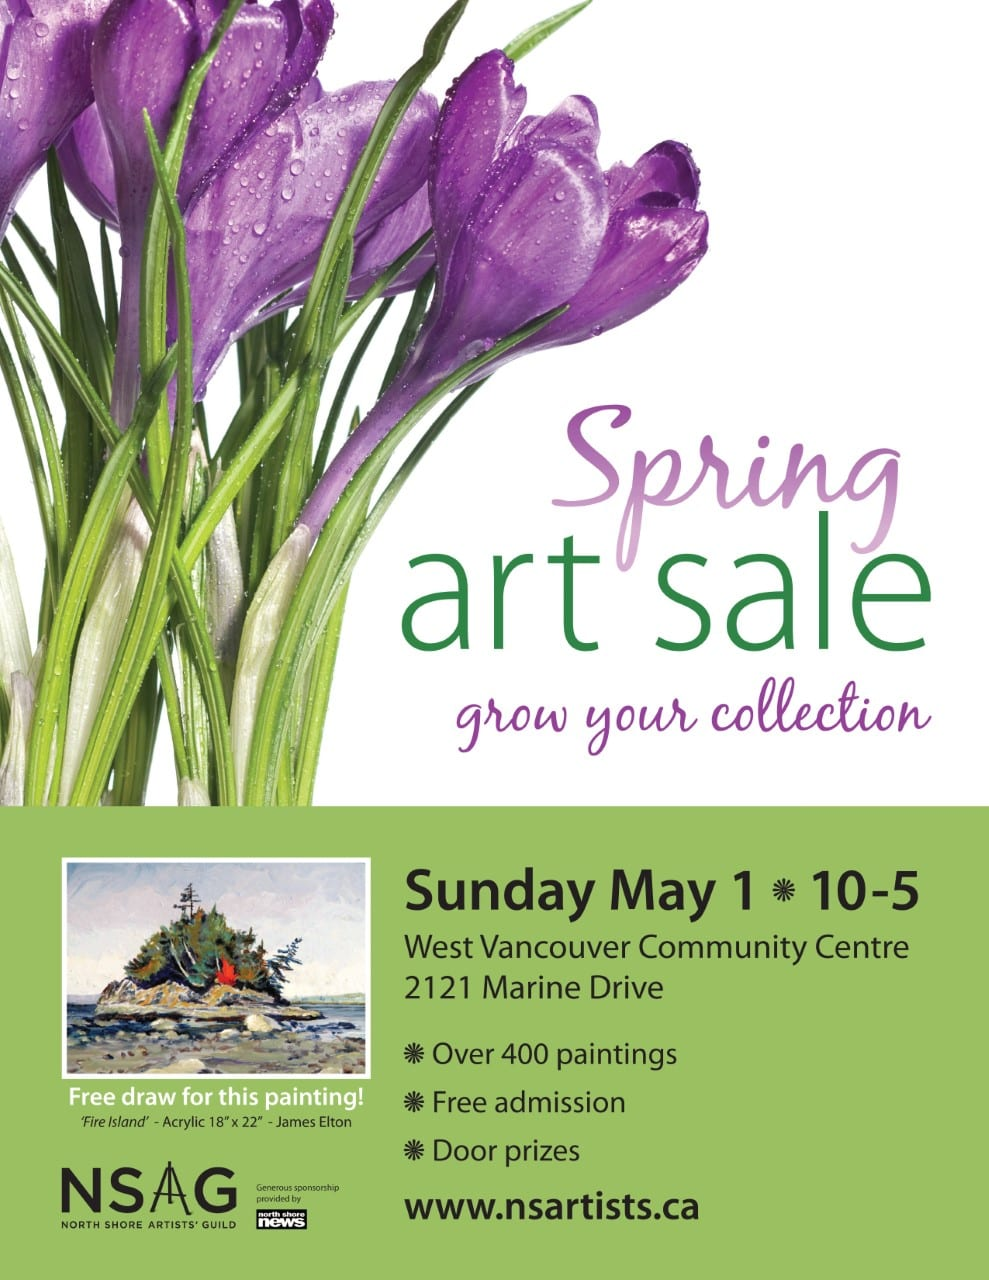 North Shore Artists' Guild Spring Art Sale at the West Vancouver Community Centre